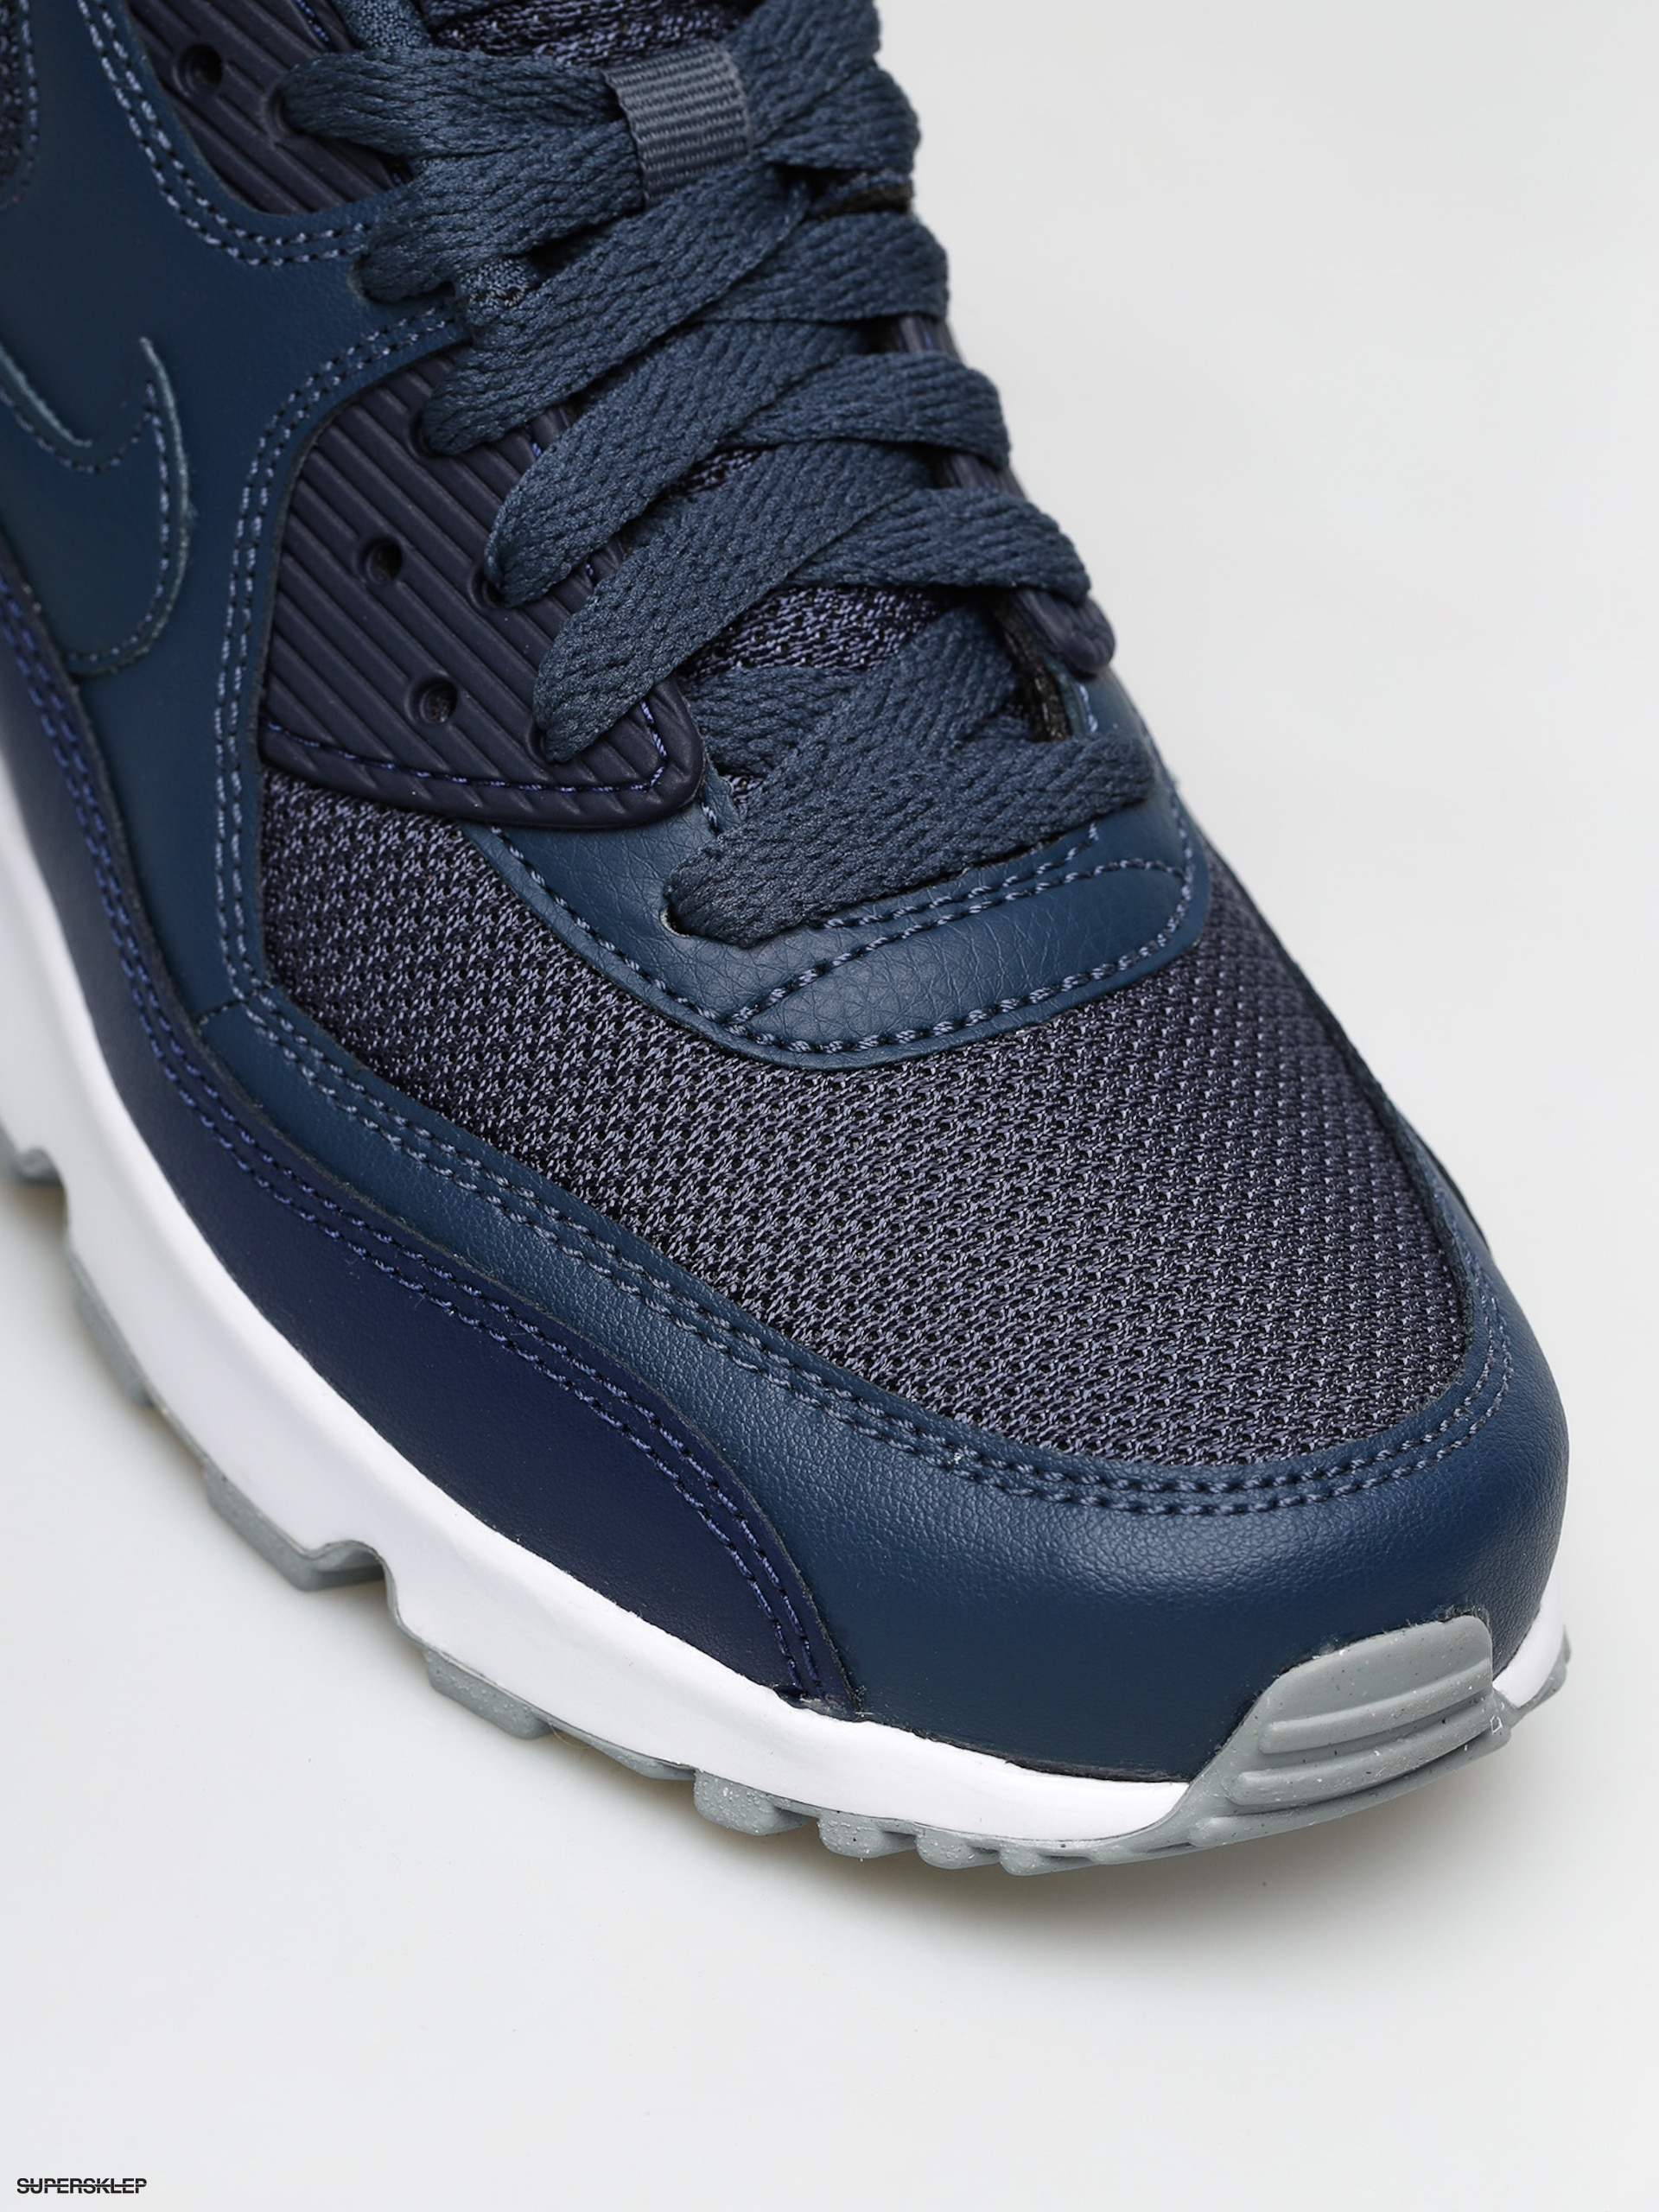 nike air max 90 white and navy blue